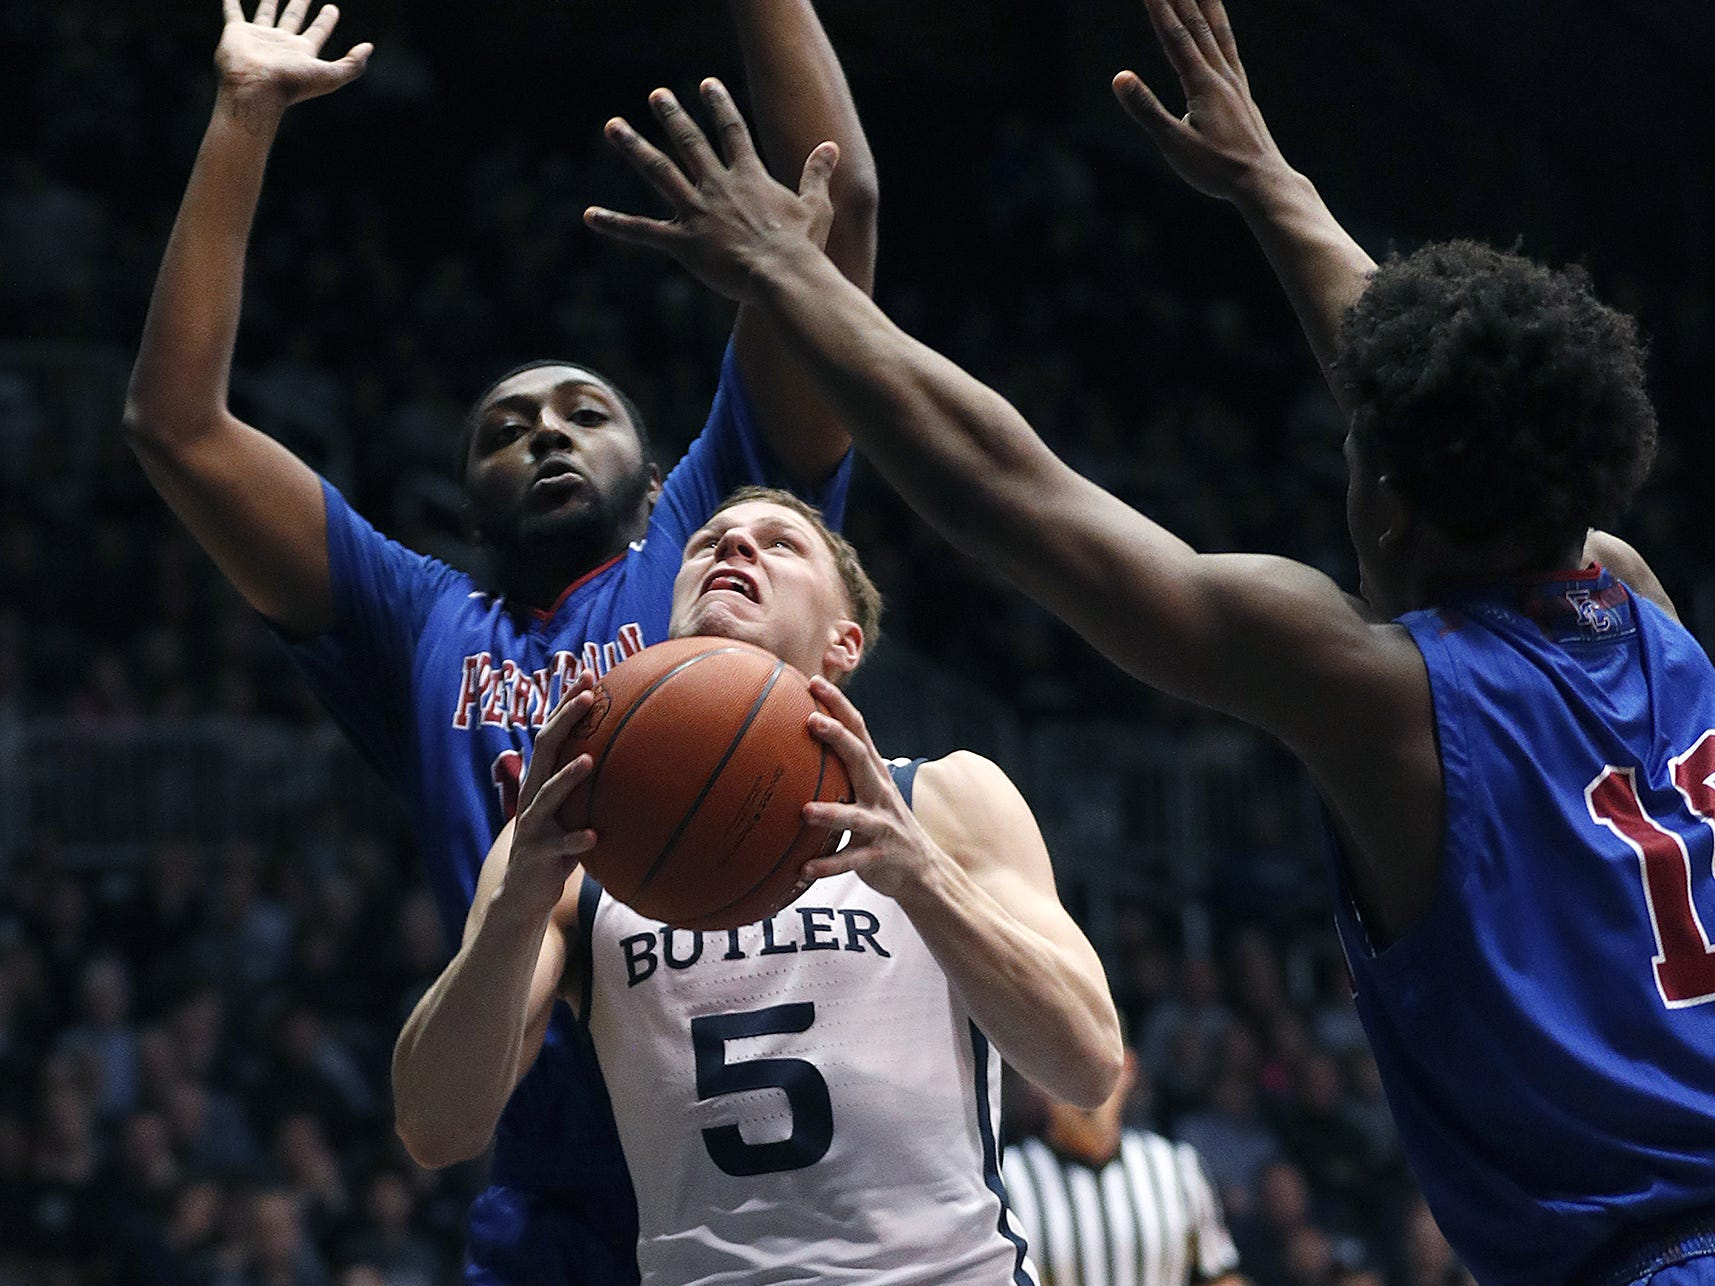 Butler Bulldogs guard Paul Jorgensen (5) shoots on Presbyterian Blue Hose guard Adam Flagler (10) in the first half of their game at Hinkle Fieldhouse on Monday, Dec. 18, 2018.